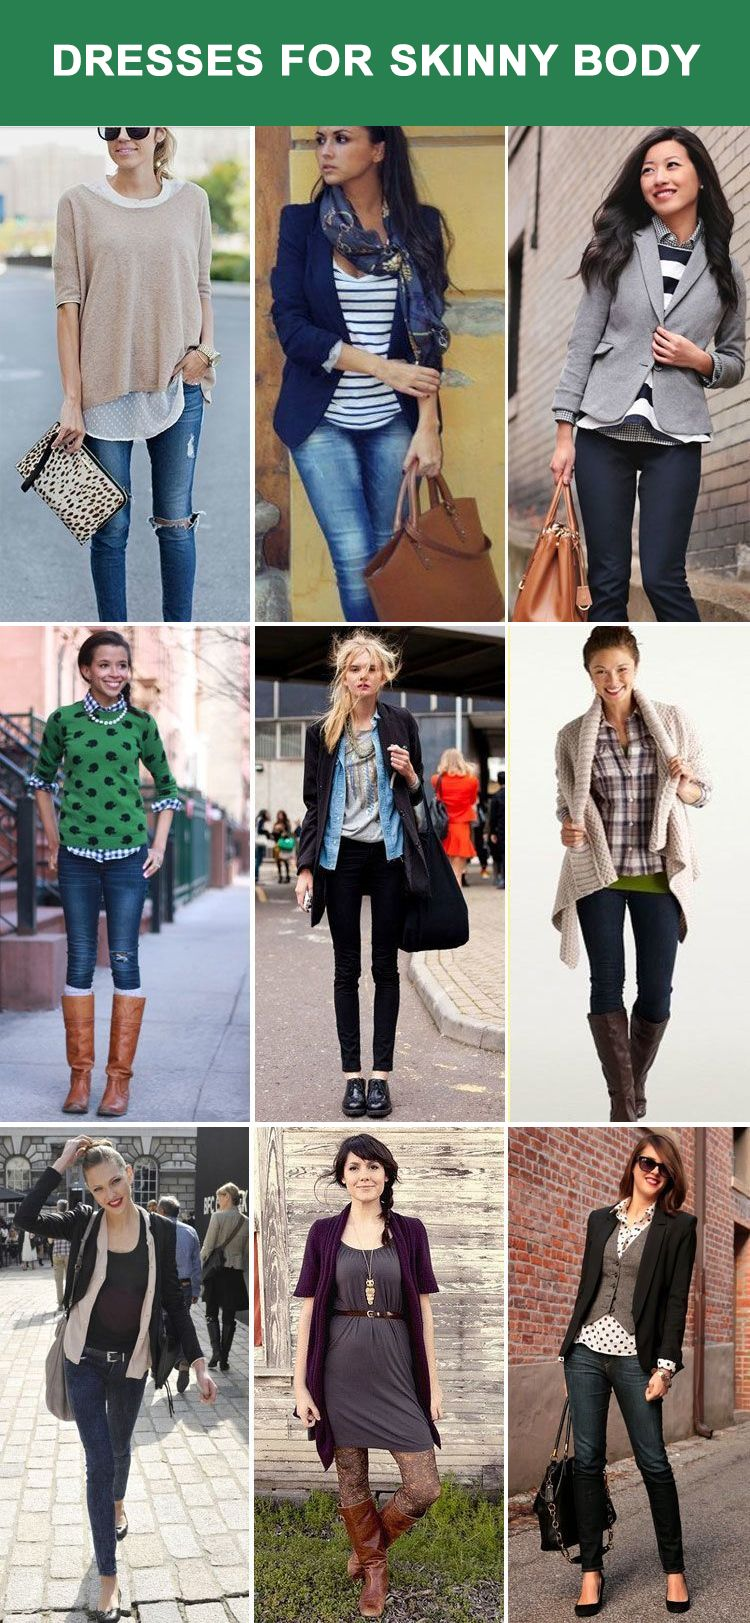 Discussion on this topic: Fashion Tips for Skinny Girls, fashion-tips-for-skinny-girls/